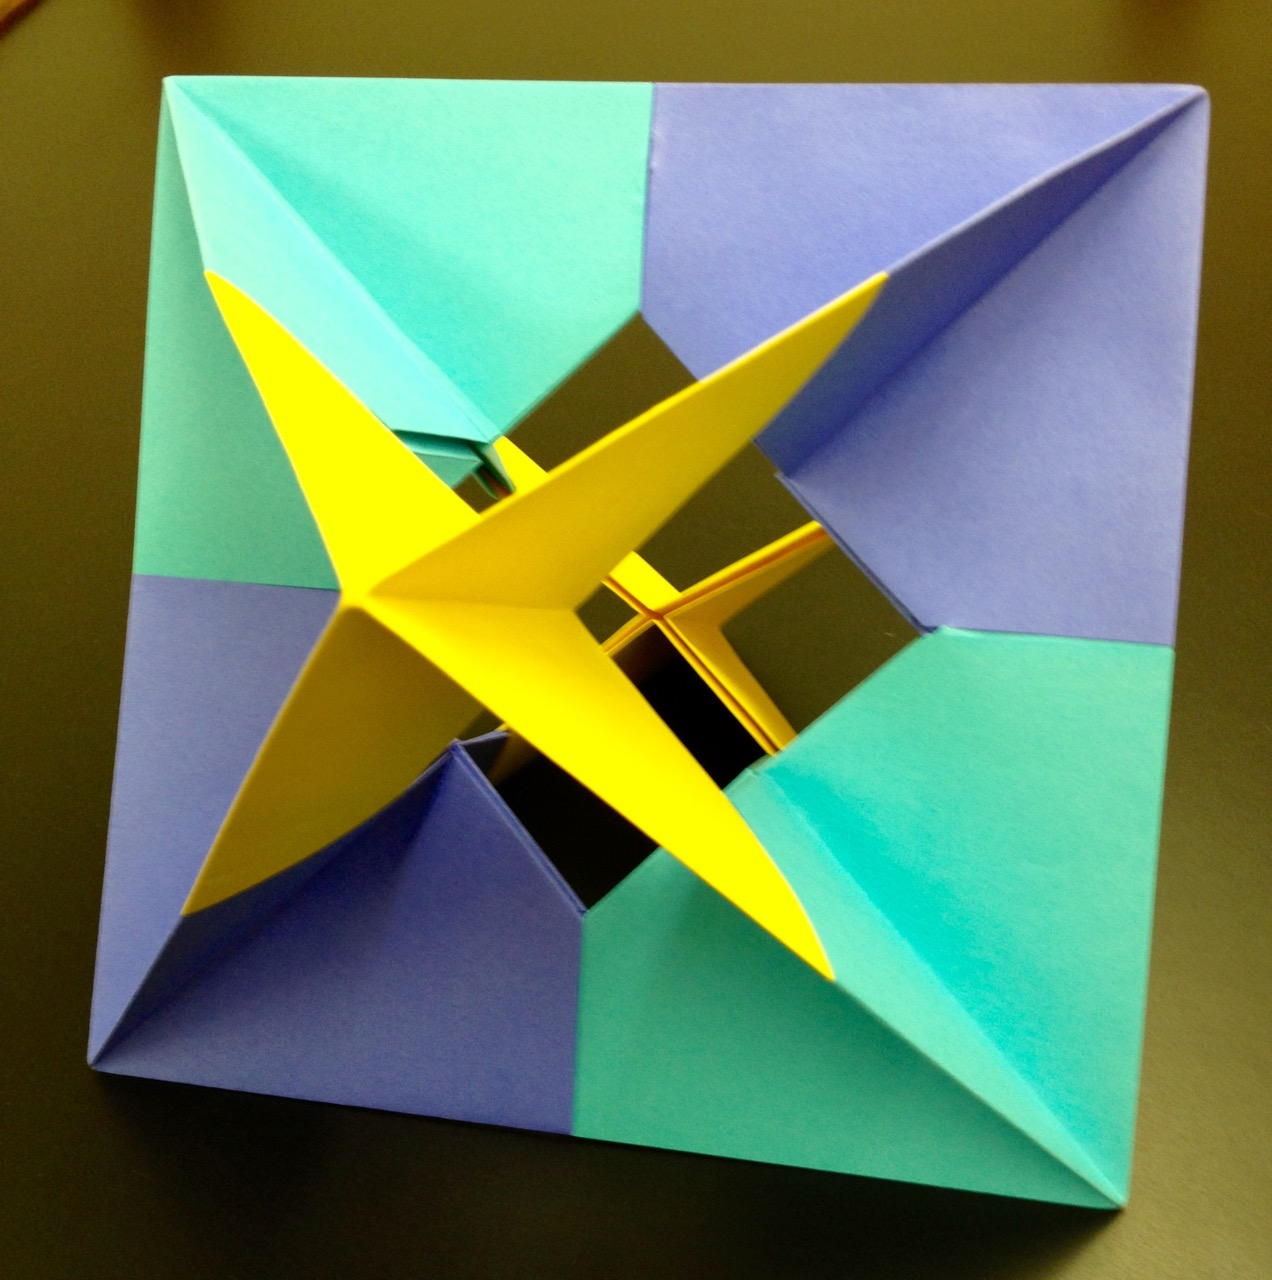 Teaching math with modular origami scholastic for Craft work with paper folding